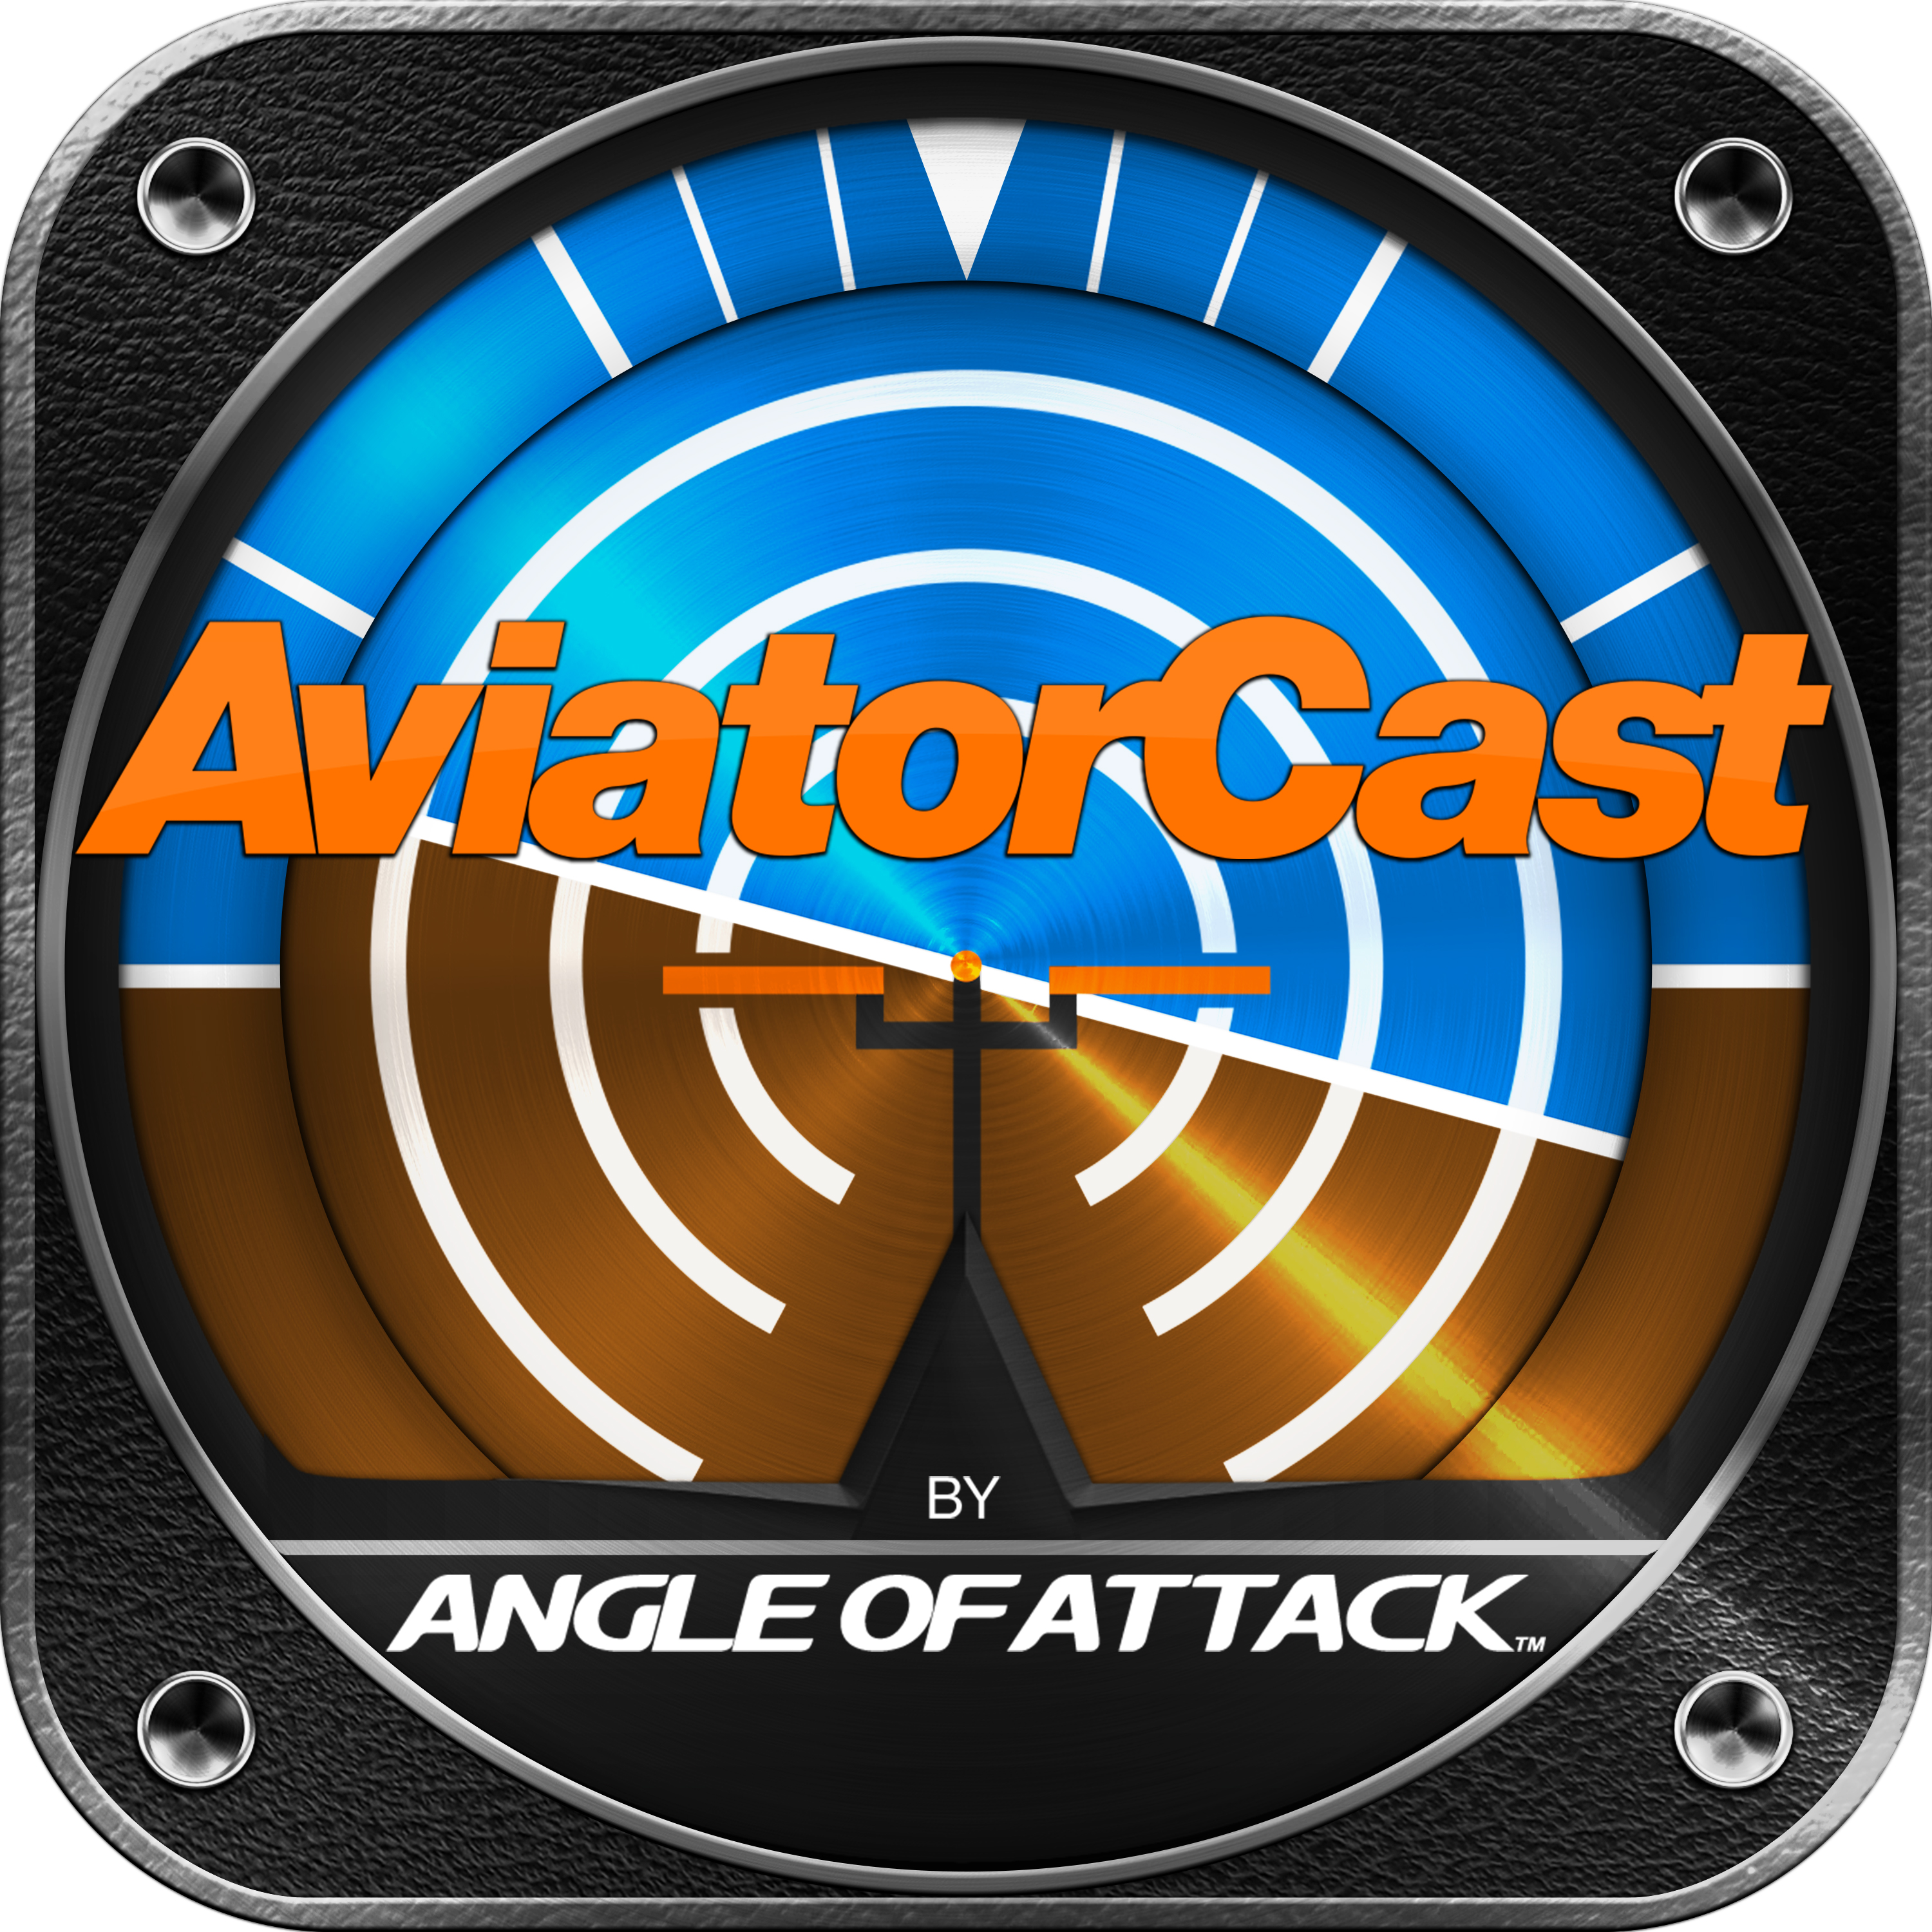 Josh Flowers from Aviation101: Tools to Help Avoid CFIT